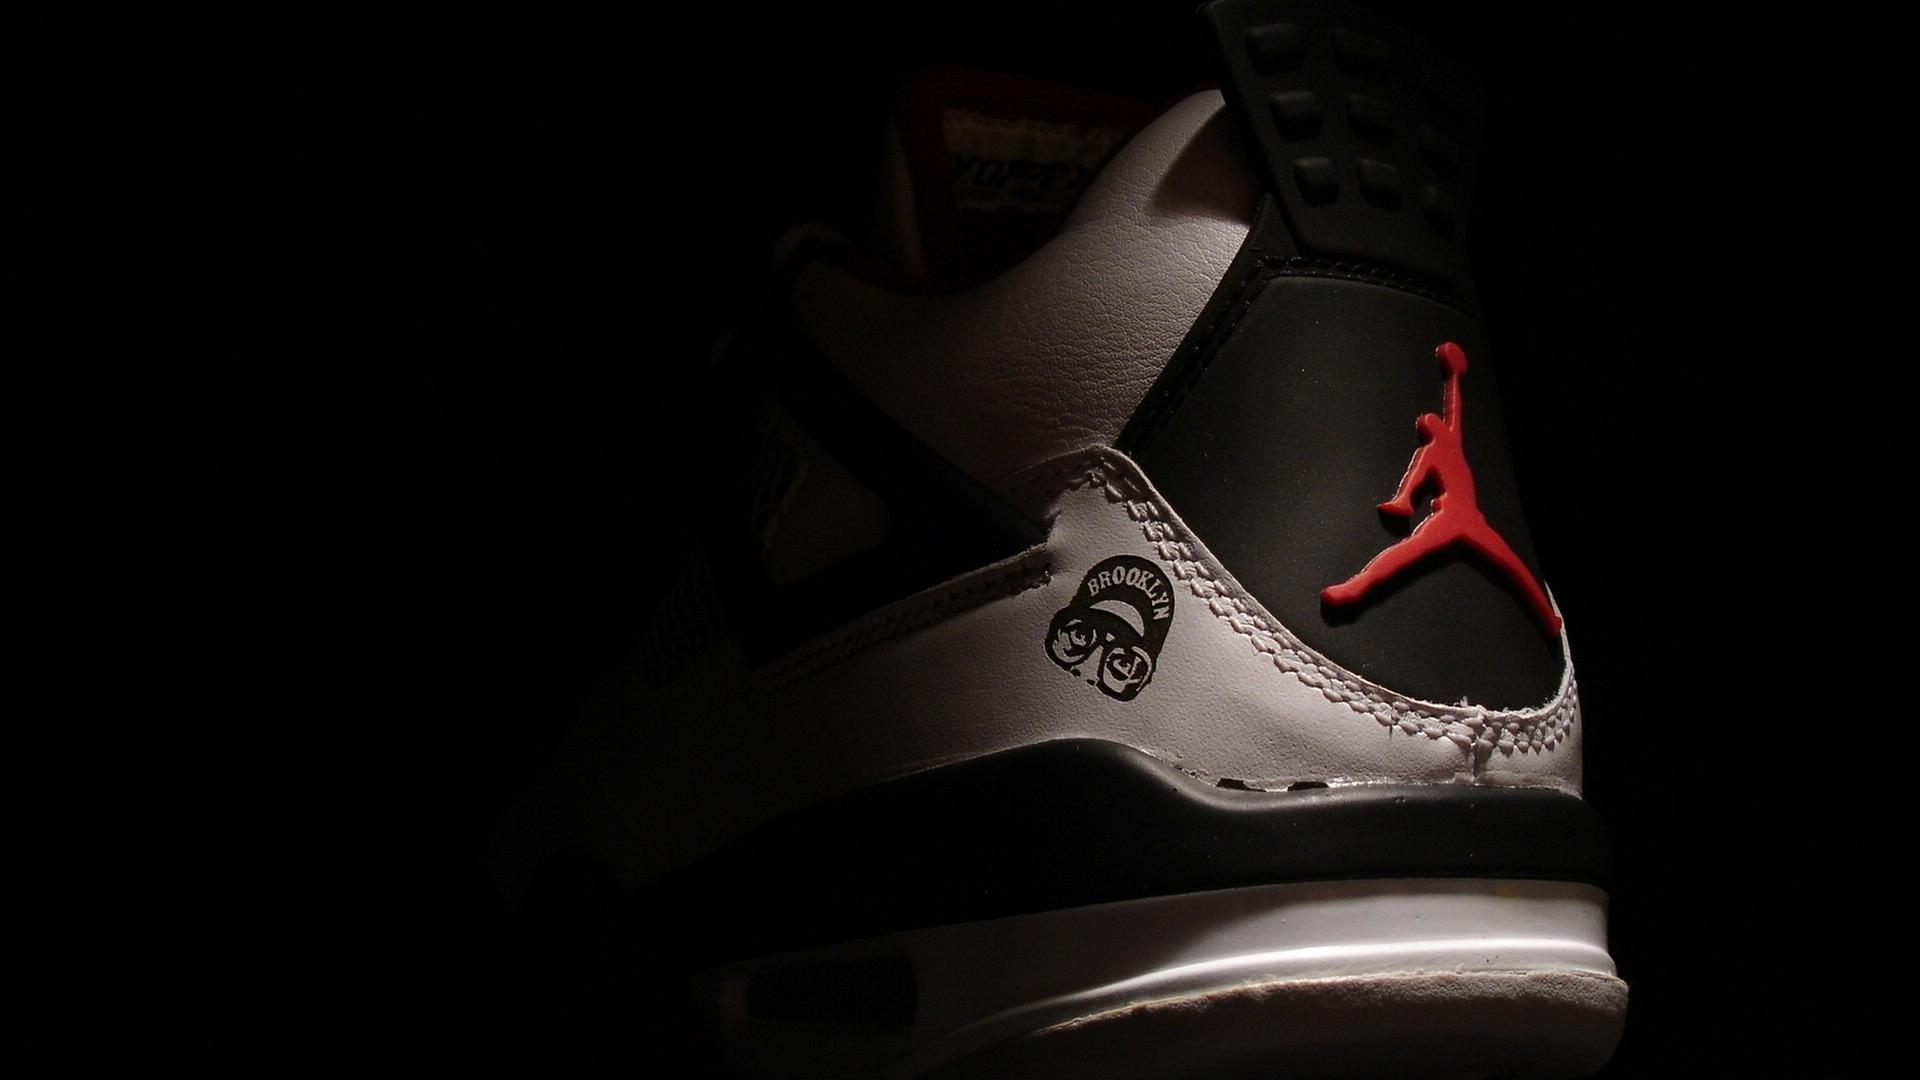 Air Jordan Shoes Wallpaper Hd - TrendShoes